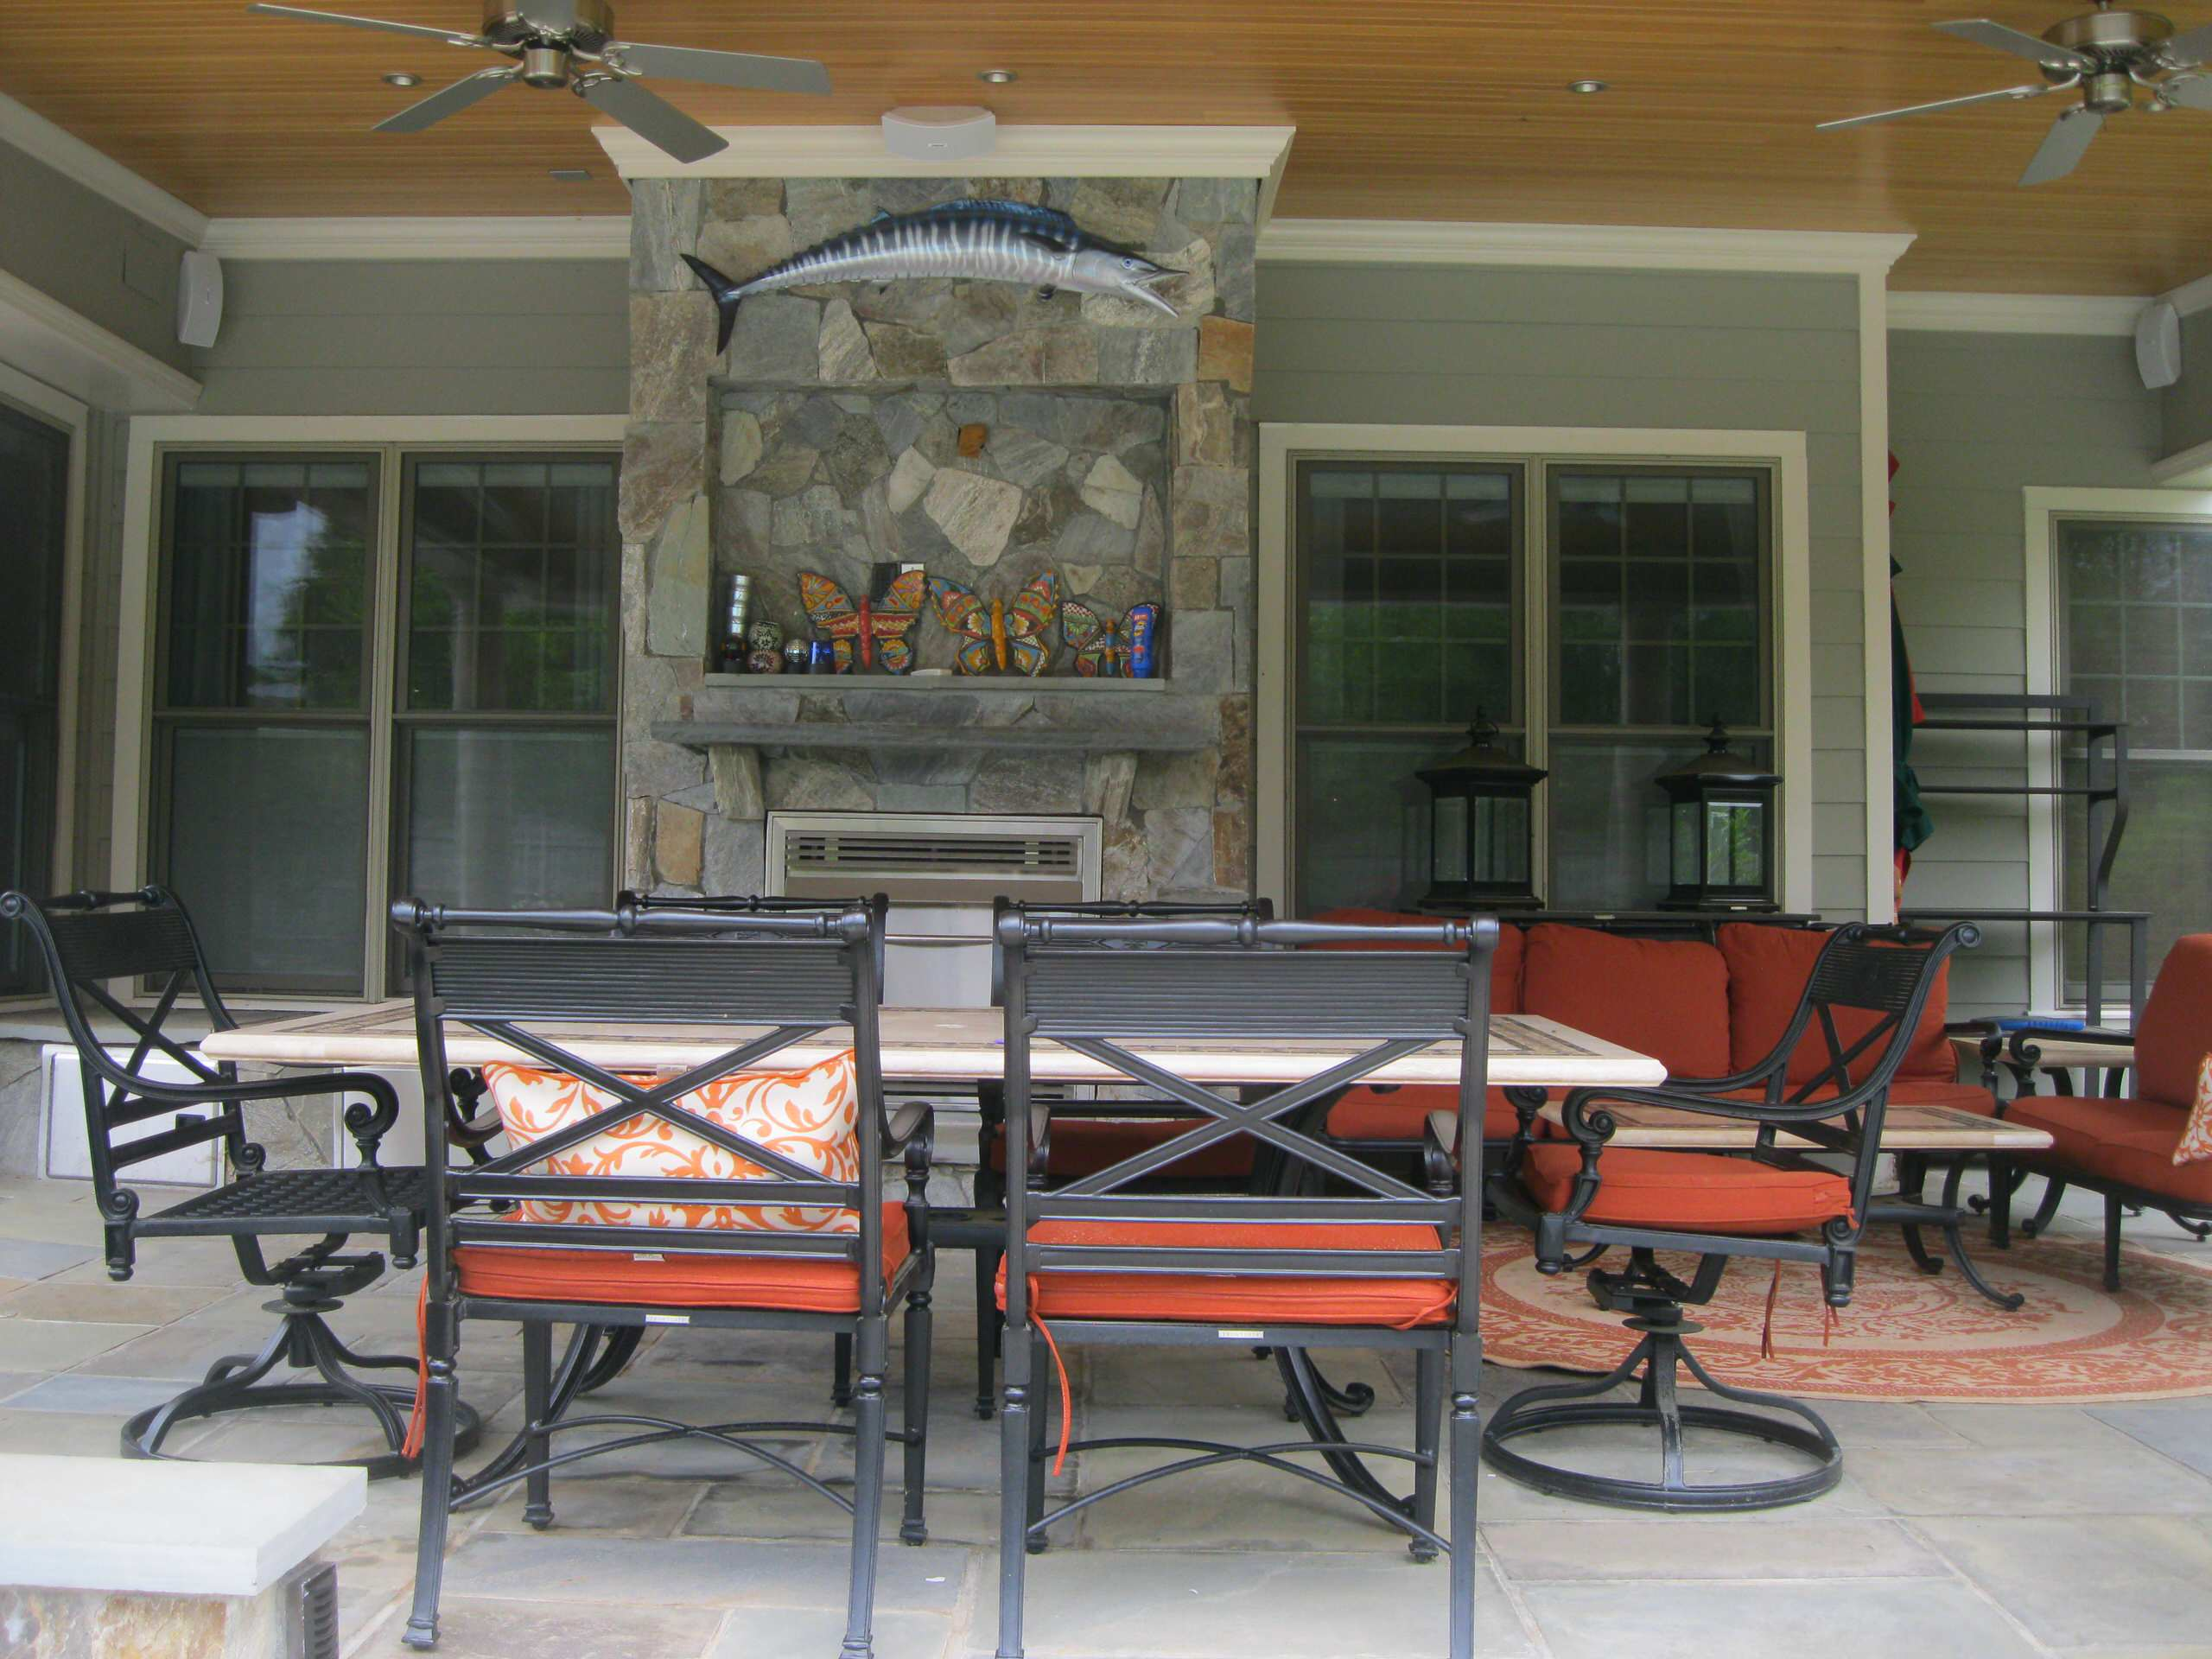 Great Falls master plan covered pavilion with outdoor kitchen